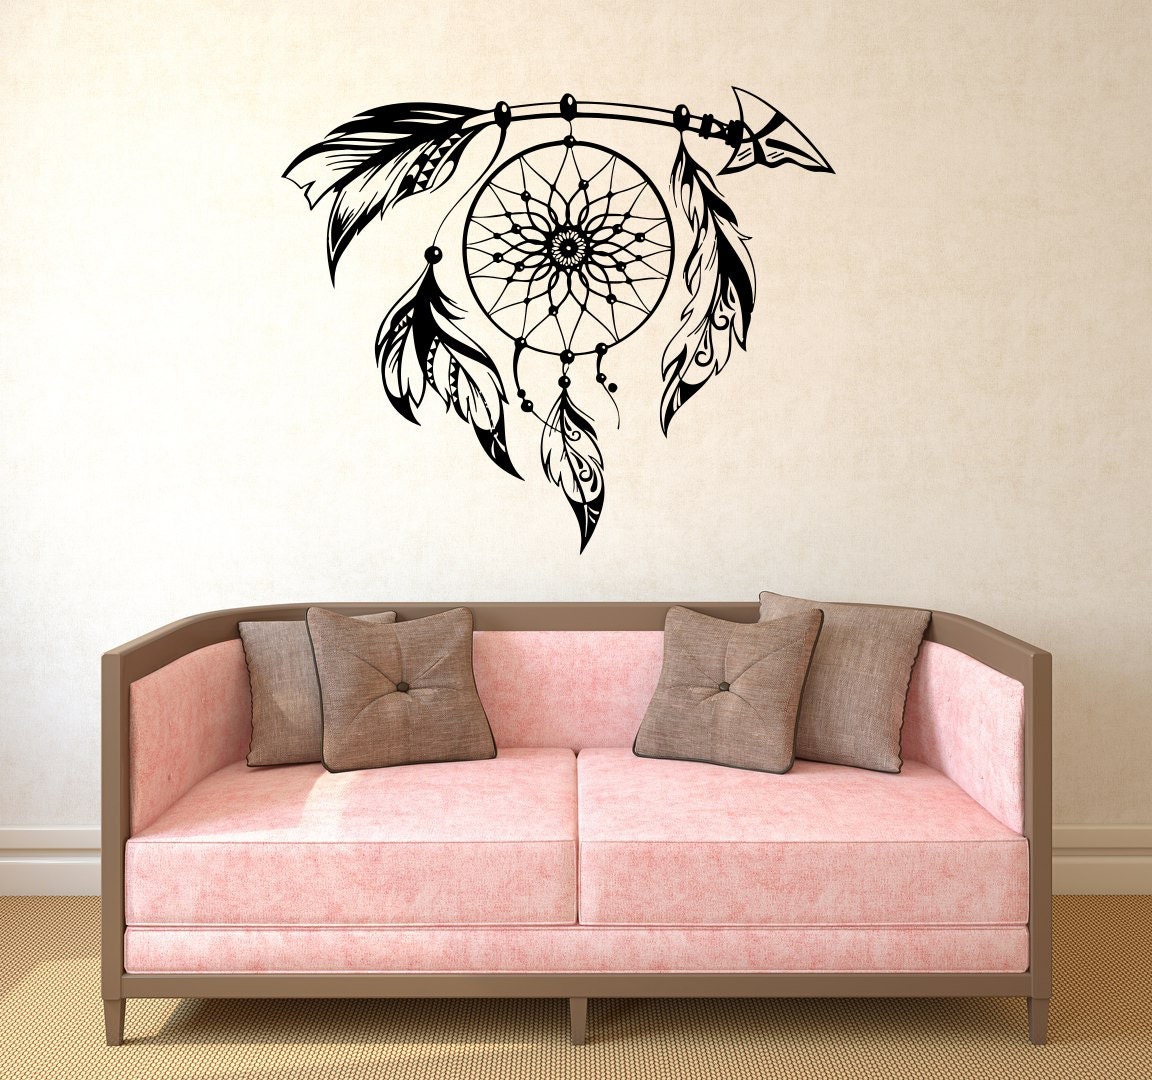 Cool Wall Decal Arrow Decal Dream Catcher Wall Decal Vinyl Sticker Decals Boho